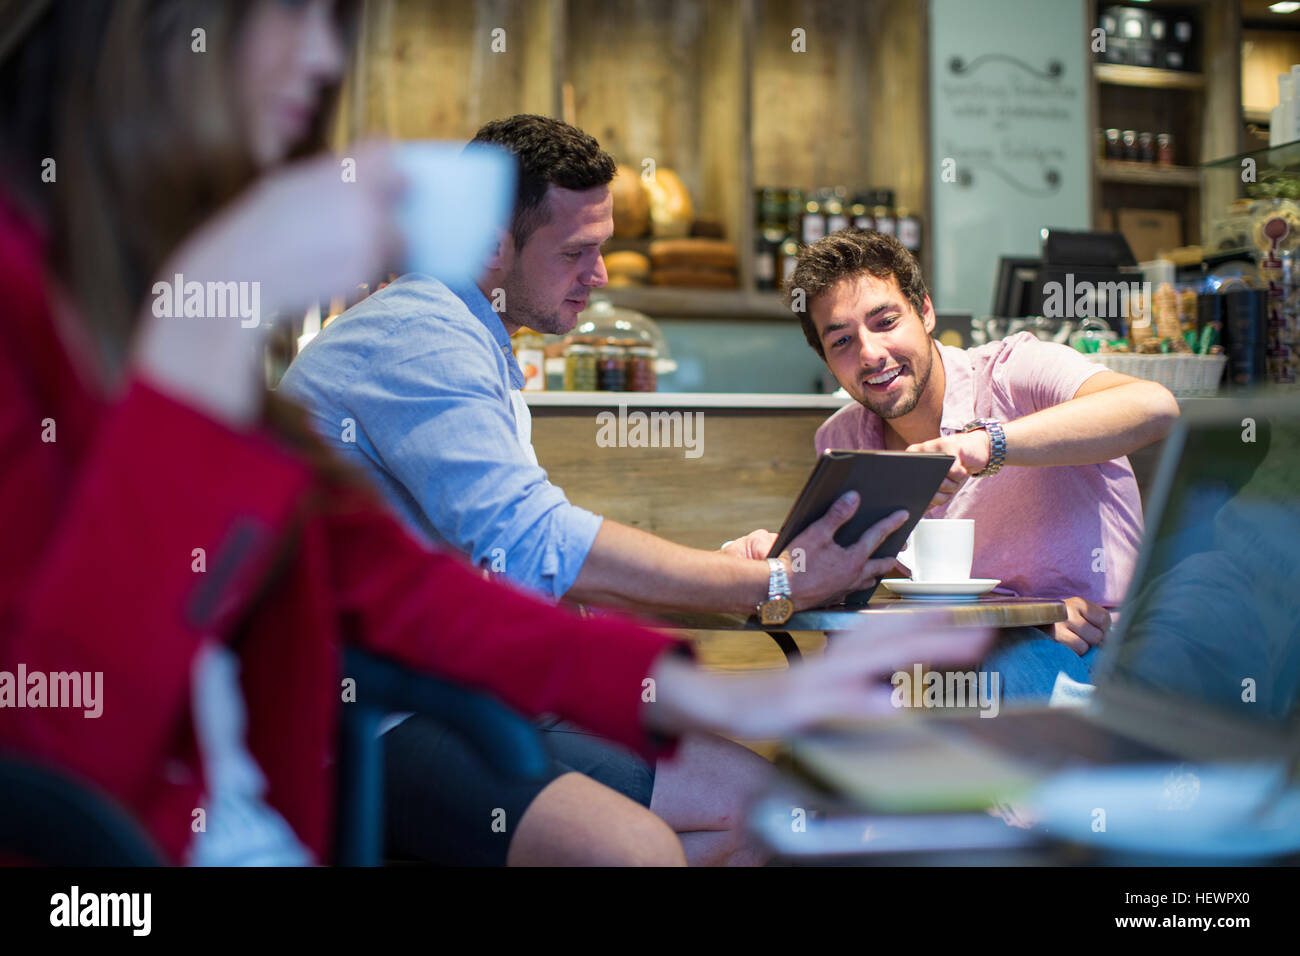 Amis assis dans cafe pointing at digital tablet Photo Stock